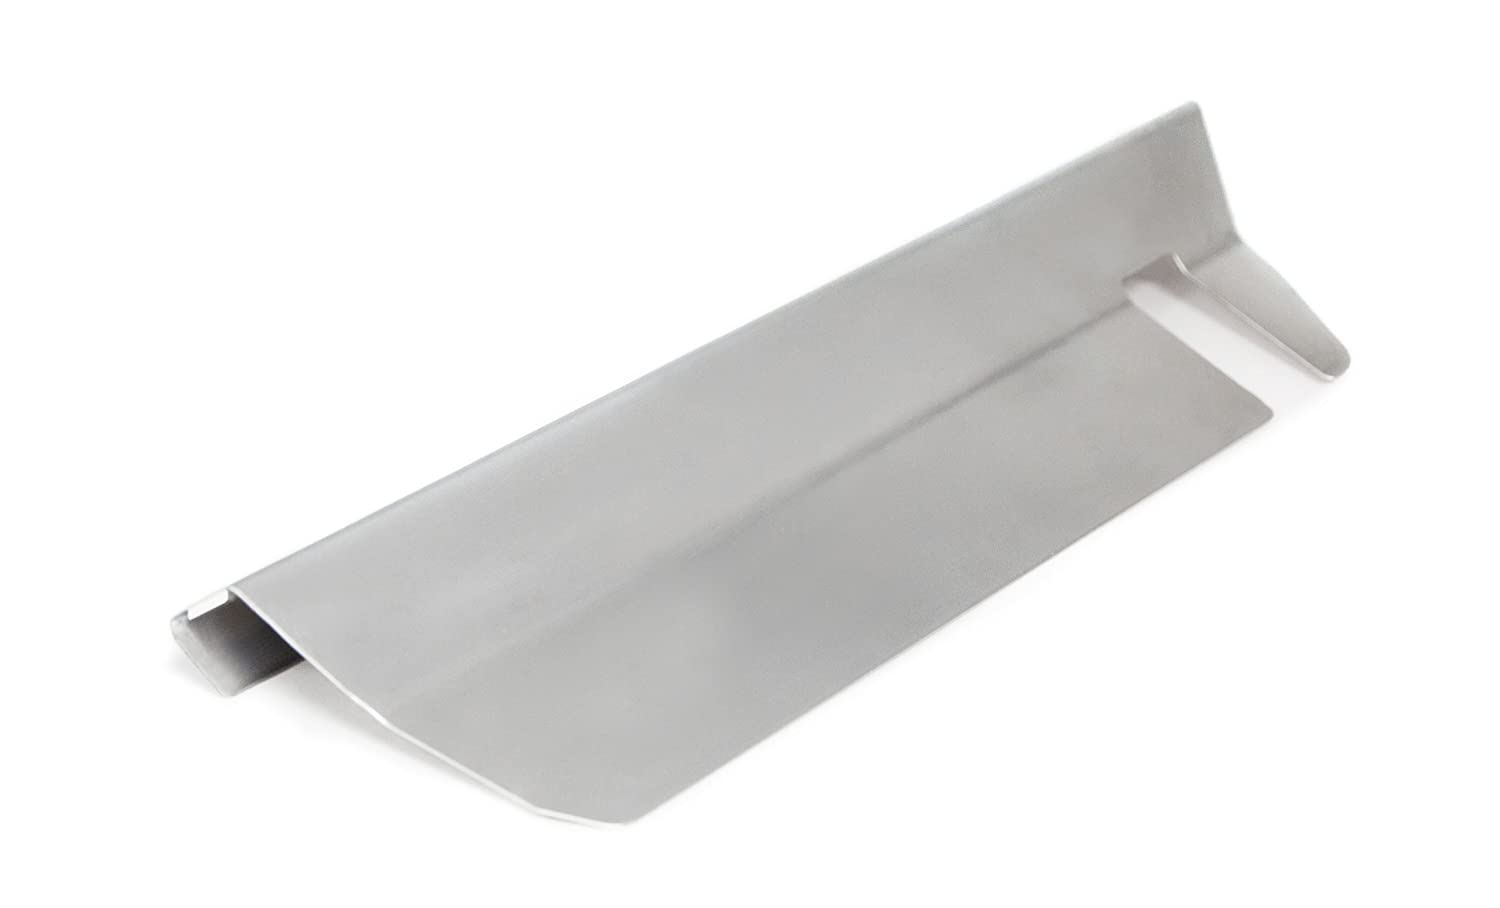 Broil King FLAV-R-WAVE Stainless Divider for Broil King Signet and Sovereign Gas Grills